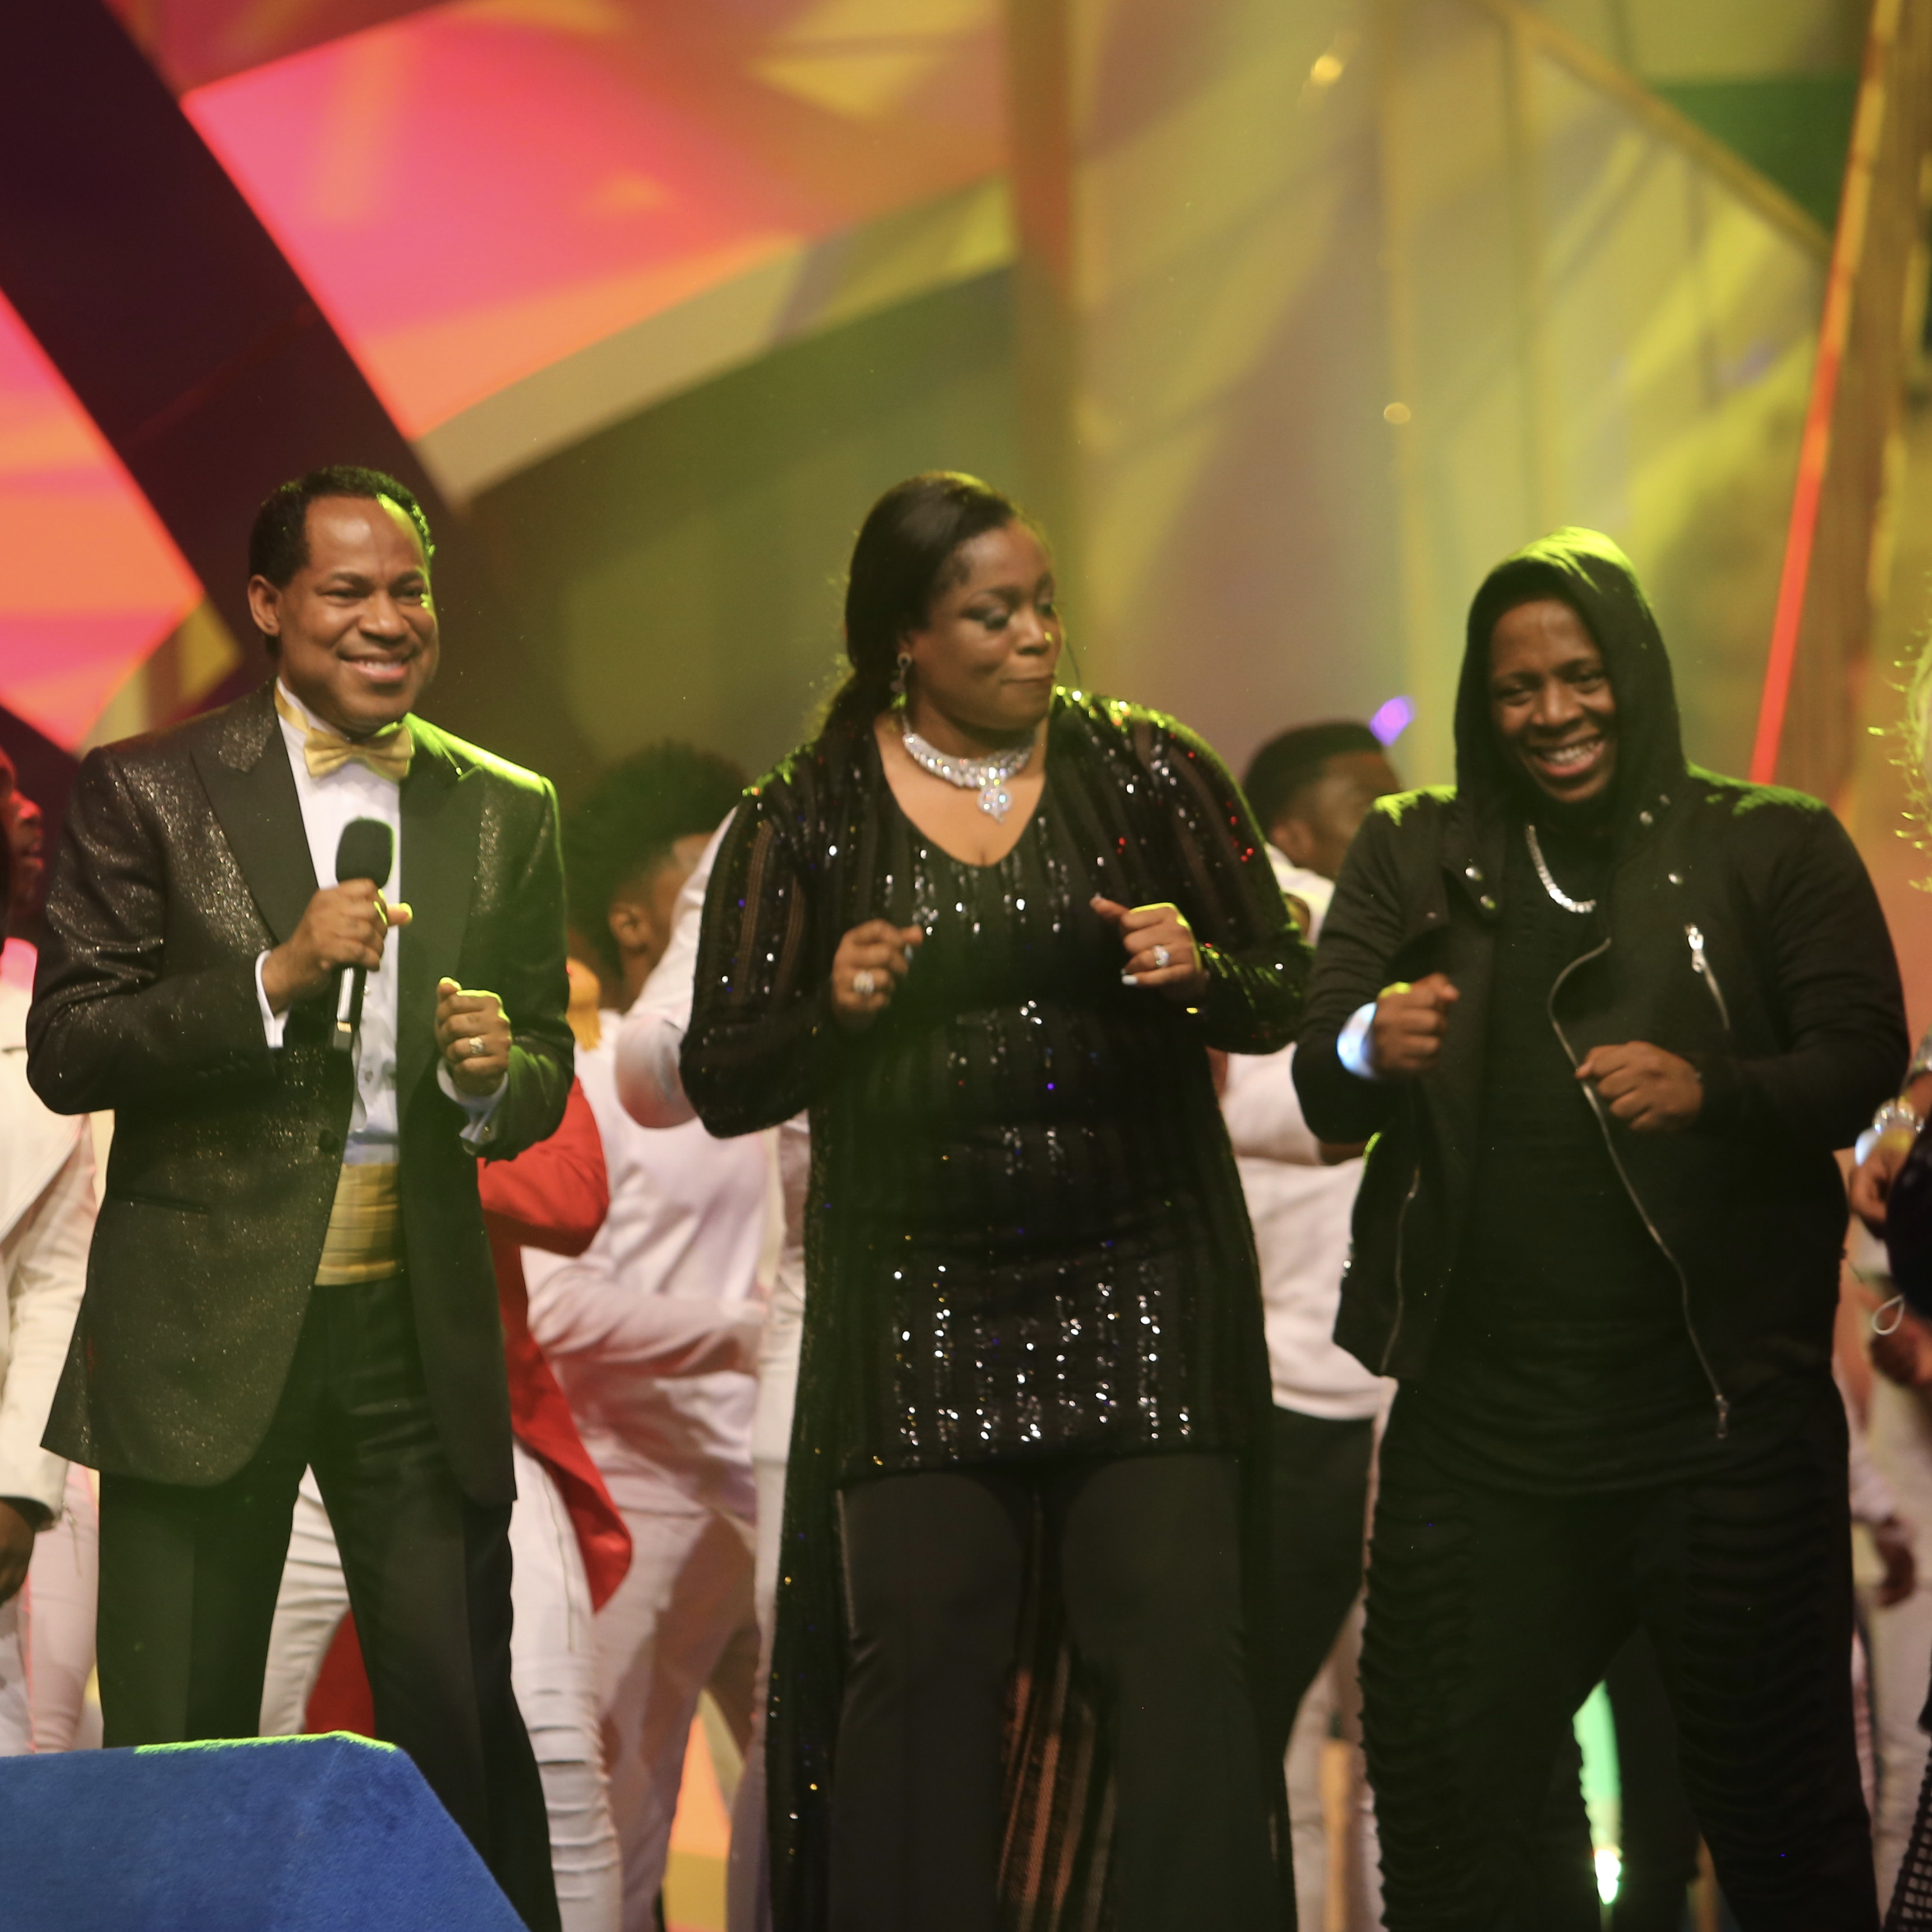 Pastor Chris, Sinach, Other Artistes Show Off Dance Moves at #IMC2017